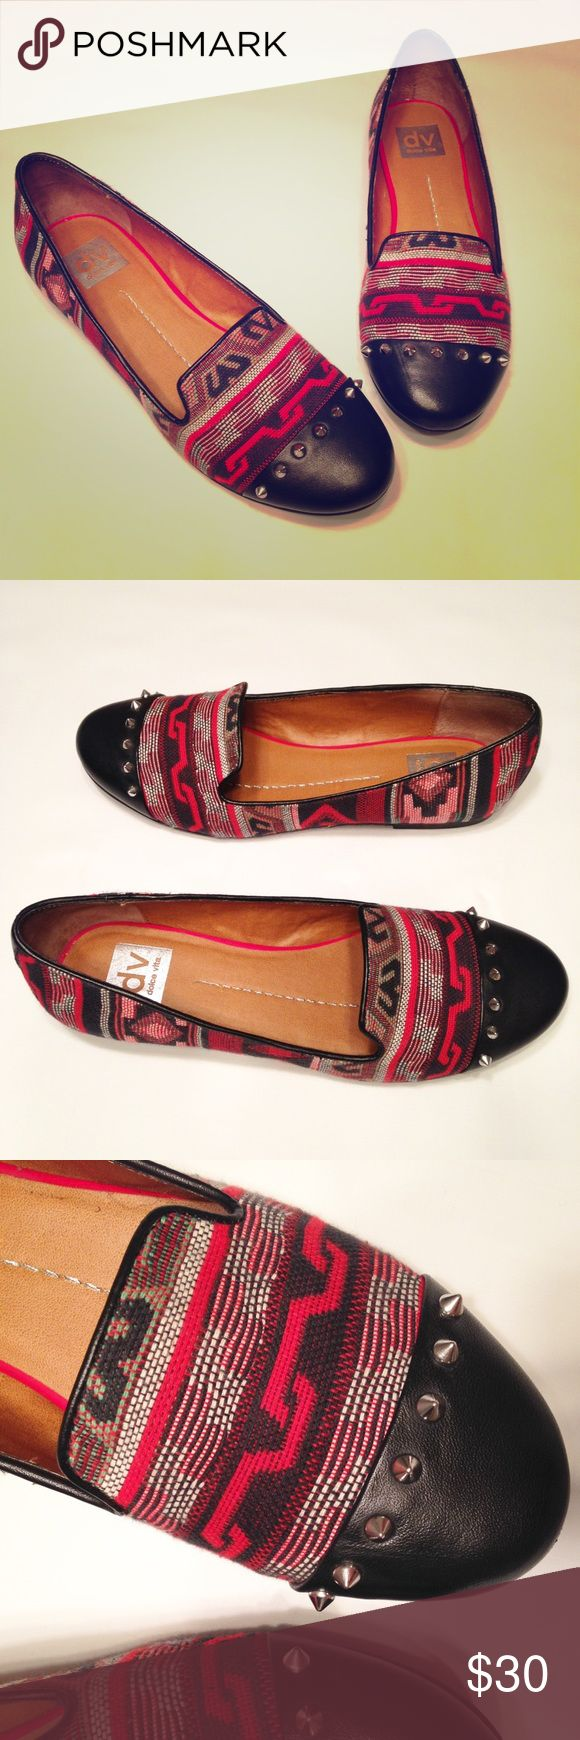 Aztec Flats by Dolce Vita Sz 9 EUC These are so fun - what's better than combining Aztec and spikes?! Comfortable Dolce Vita size 9 flats in EUC, almost no sign of wear. Pair perfectly with skinny jeans or leggings! Dolce Vita Shoes Flats & Loafers